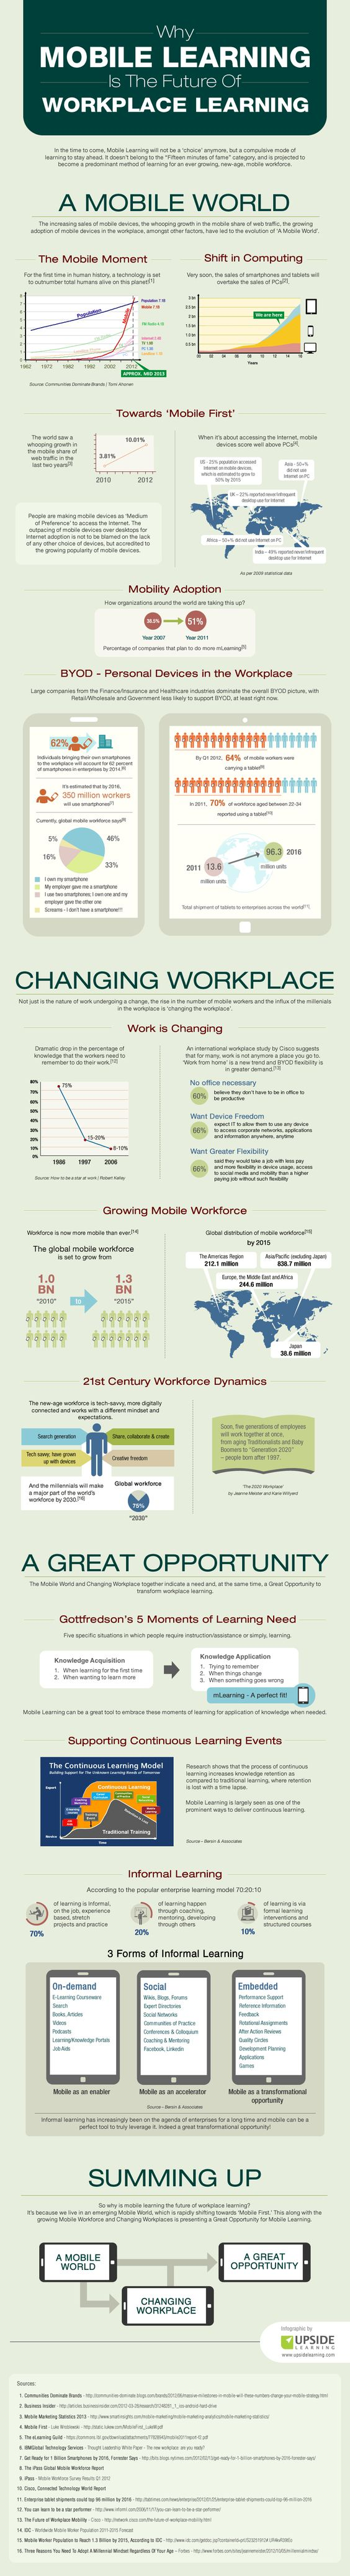 The infographic explains how the increasing sales of mobile devices, the whooping growth in the mobile share of web traffic, the growing adoption of m